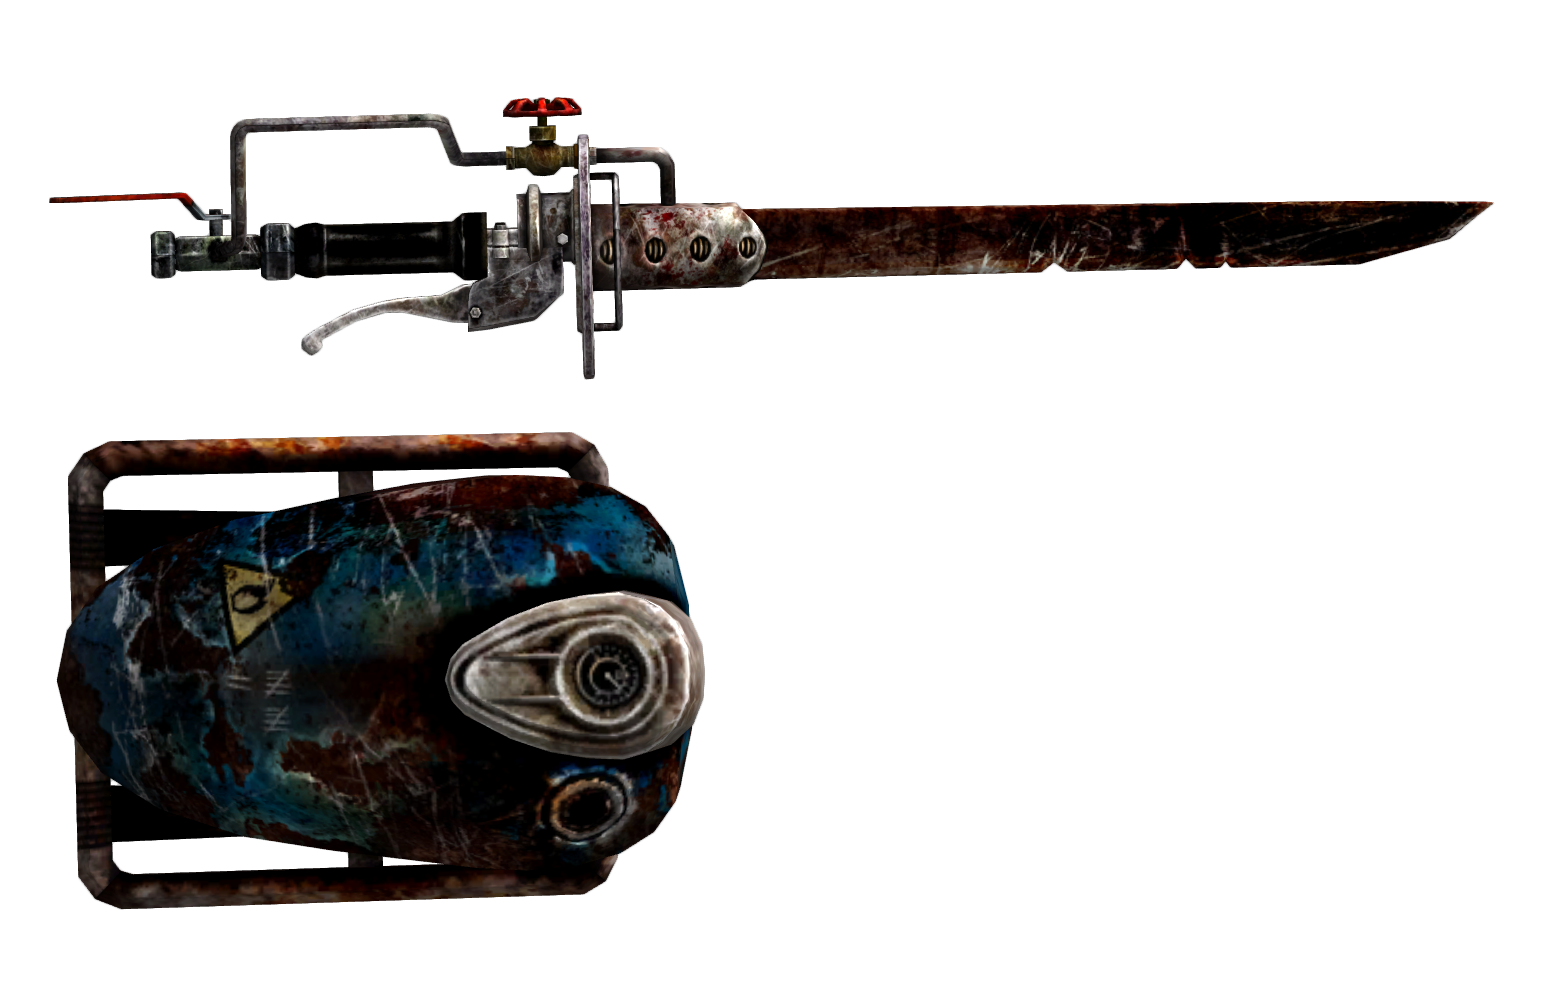 http://img3.wikia.nocookie.net/__cb20110209214845/fallout/images/f/f1/Shishkebab.png